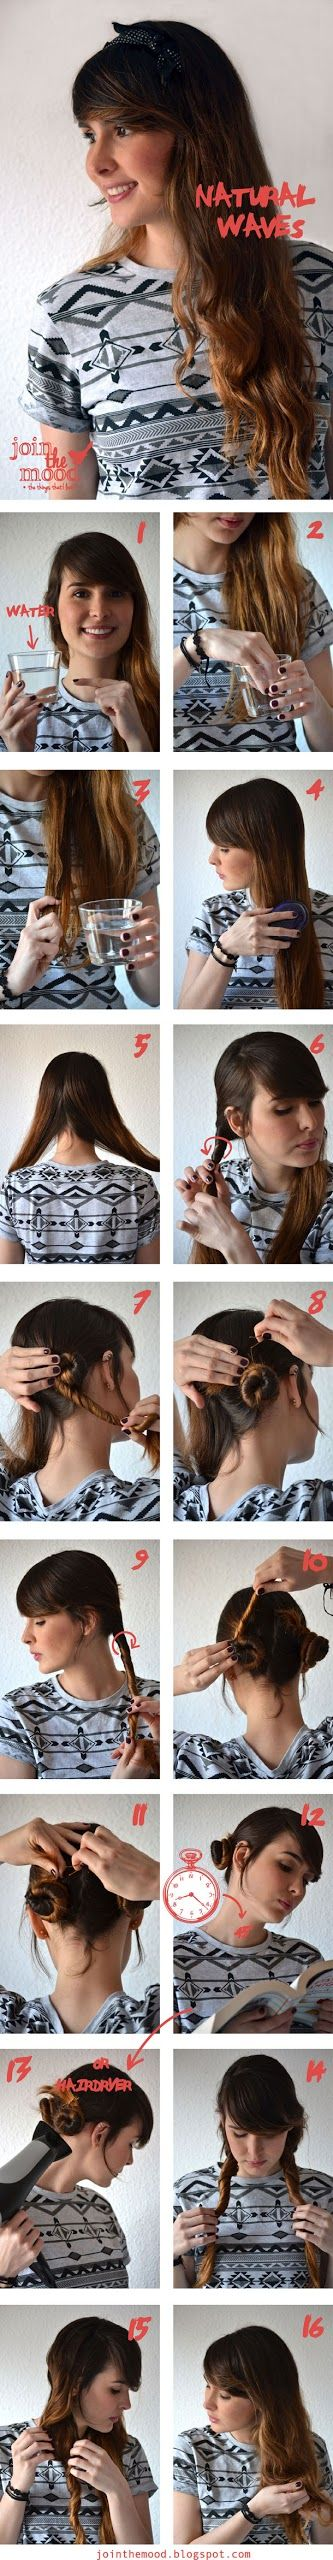 Make a Natural Waves For Your Hair Tutorial.    From:  http://hairstyles-tutorial.blogspot.com/2013/04/make-natural-waves-for-your-hair.html?utm_source=feedburner_medium=email_campaign=Feed%3A+HairstylesTutorial+%28hairstyles+tutorial%29